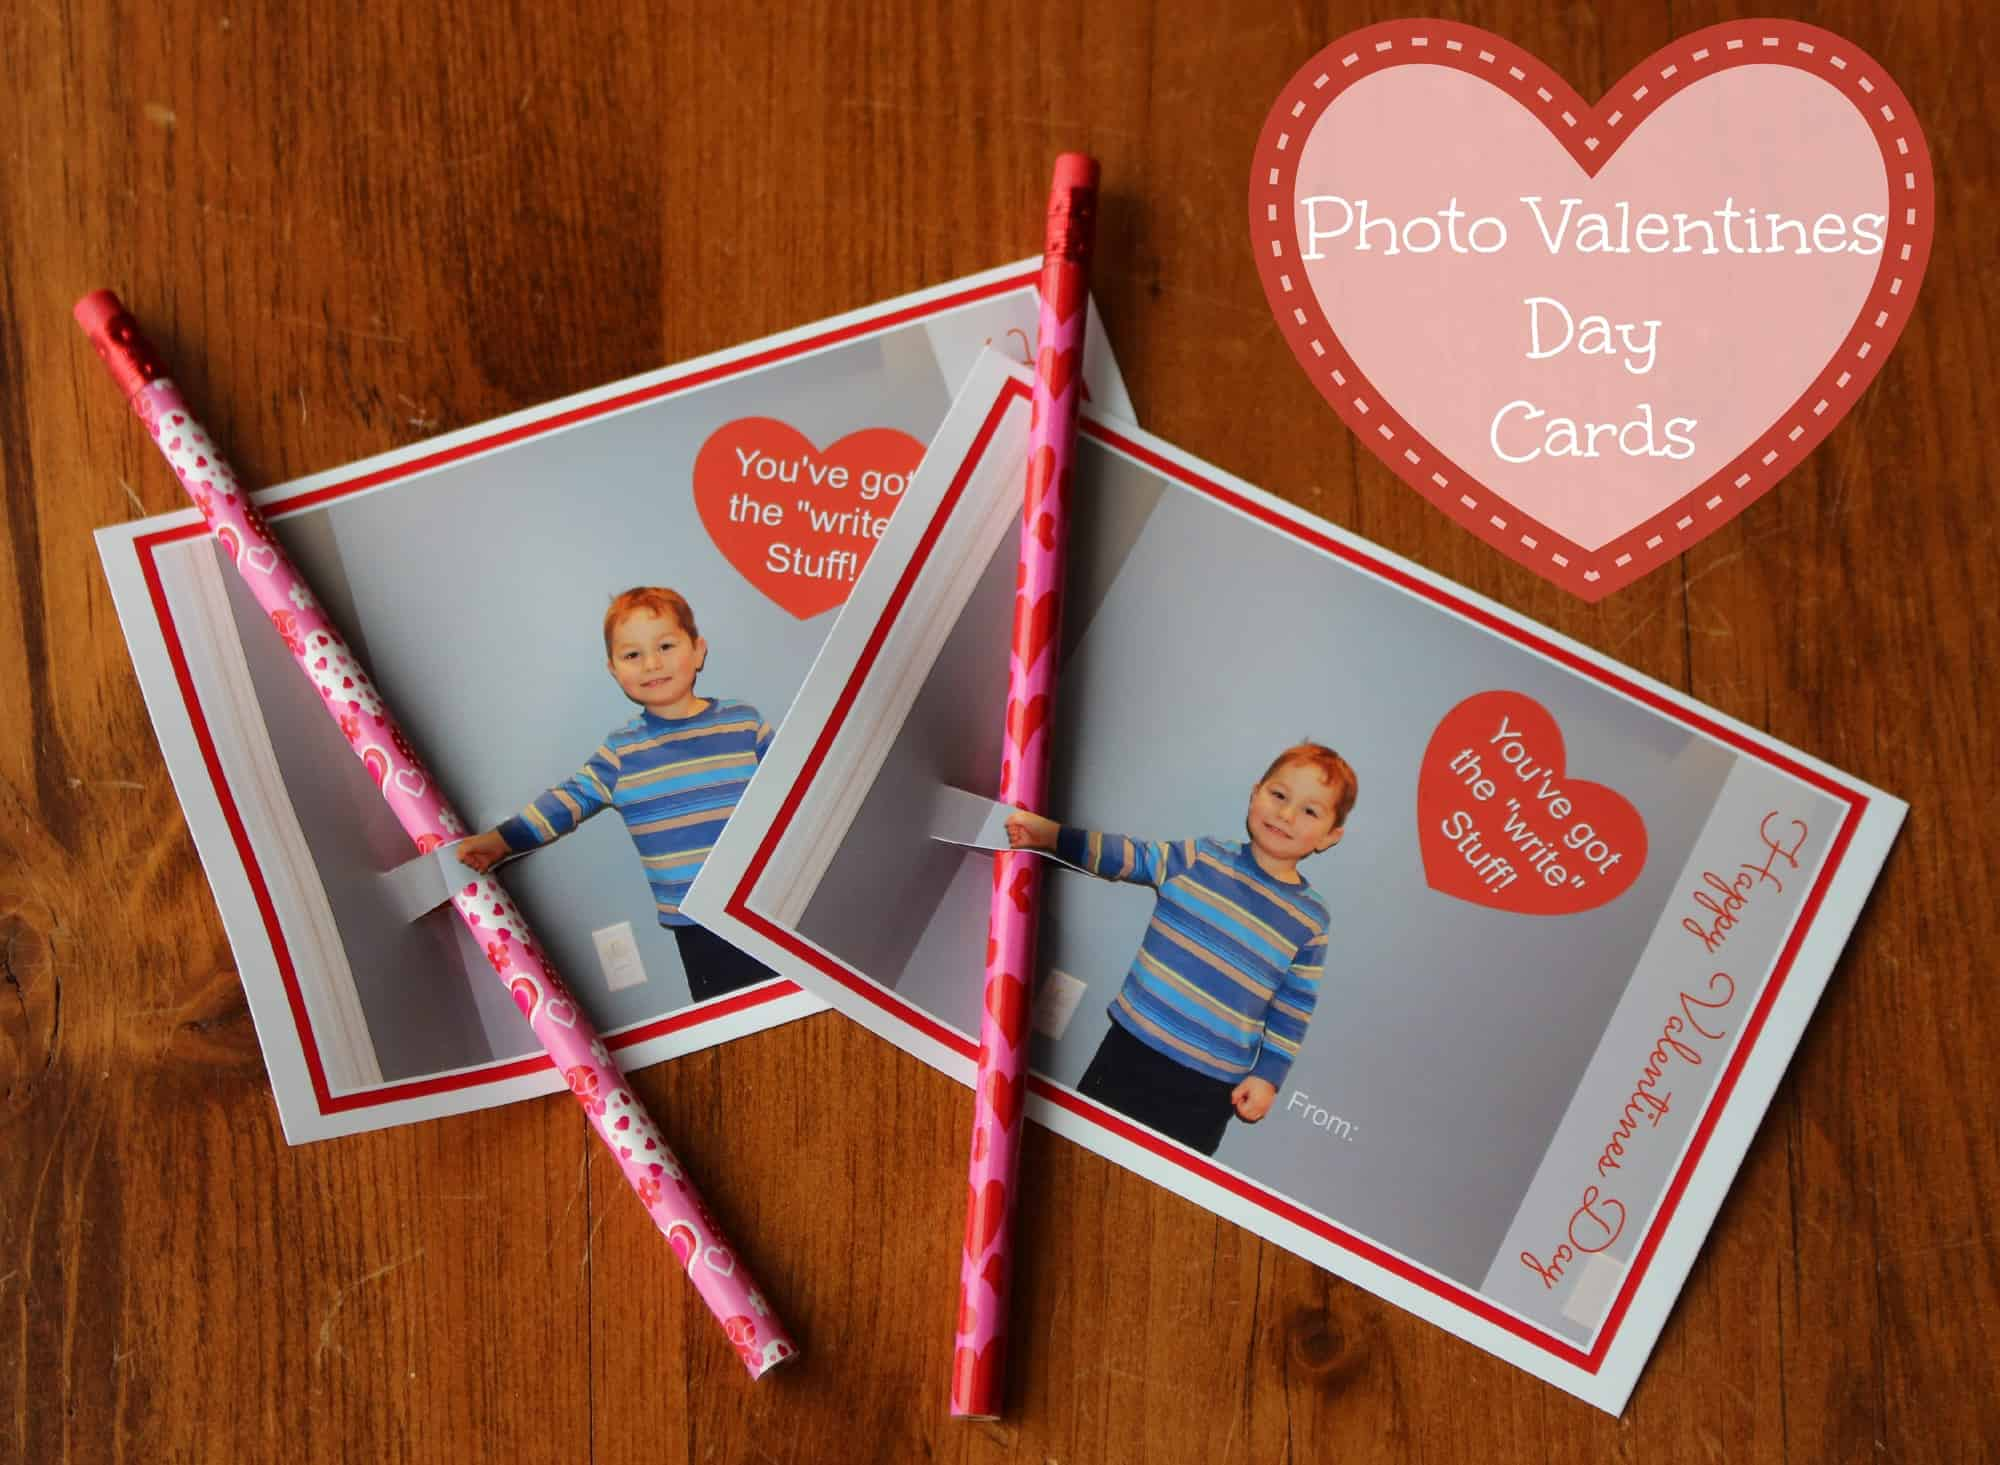 Diy kinder egg valentines with free printable little miss kate diy valentines with pencil gift via littlemisskate solutioingenieria Gallery